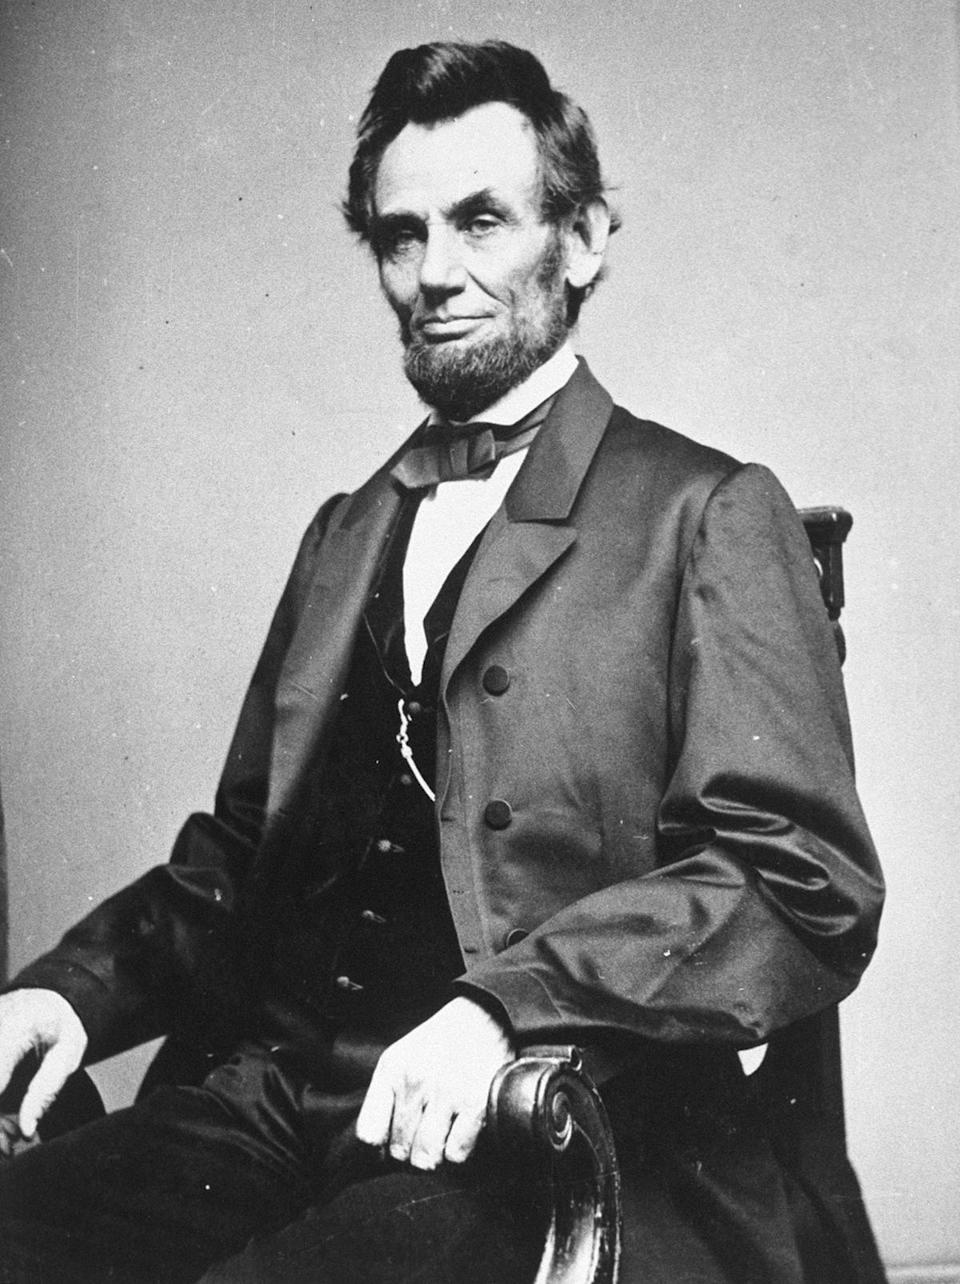 <p>Many have claimed that the ghost of Abraham Lincoln haunts the White House, with sightings taking place in the Lincoln Bedroom and Yellow Oval, specifically. </p> <p>White House doorman Jerry Smith was the first to report a sighting to a newspaper in 1903. First Lady Grace Coolidge, Prime Minister Winston Churchill and Queen Wilhelmina of the Netherlands are three notable figures who have also claimed to have seen Lincoln's ghost. </p>